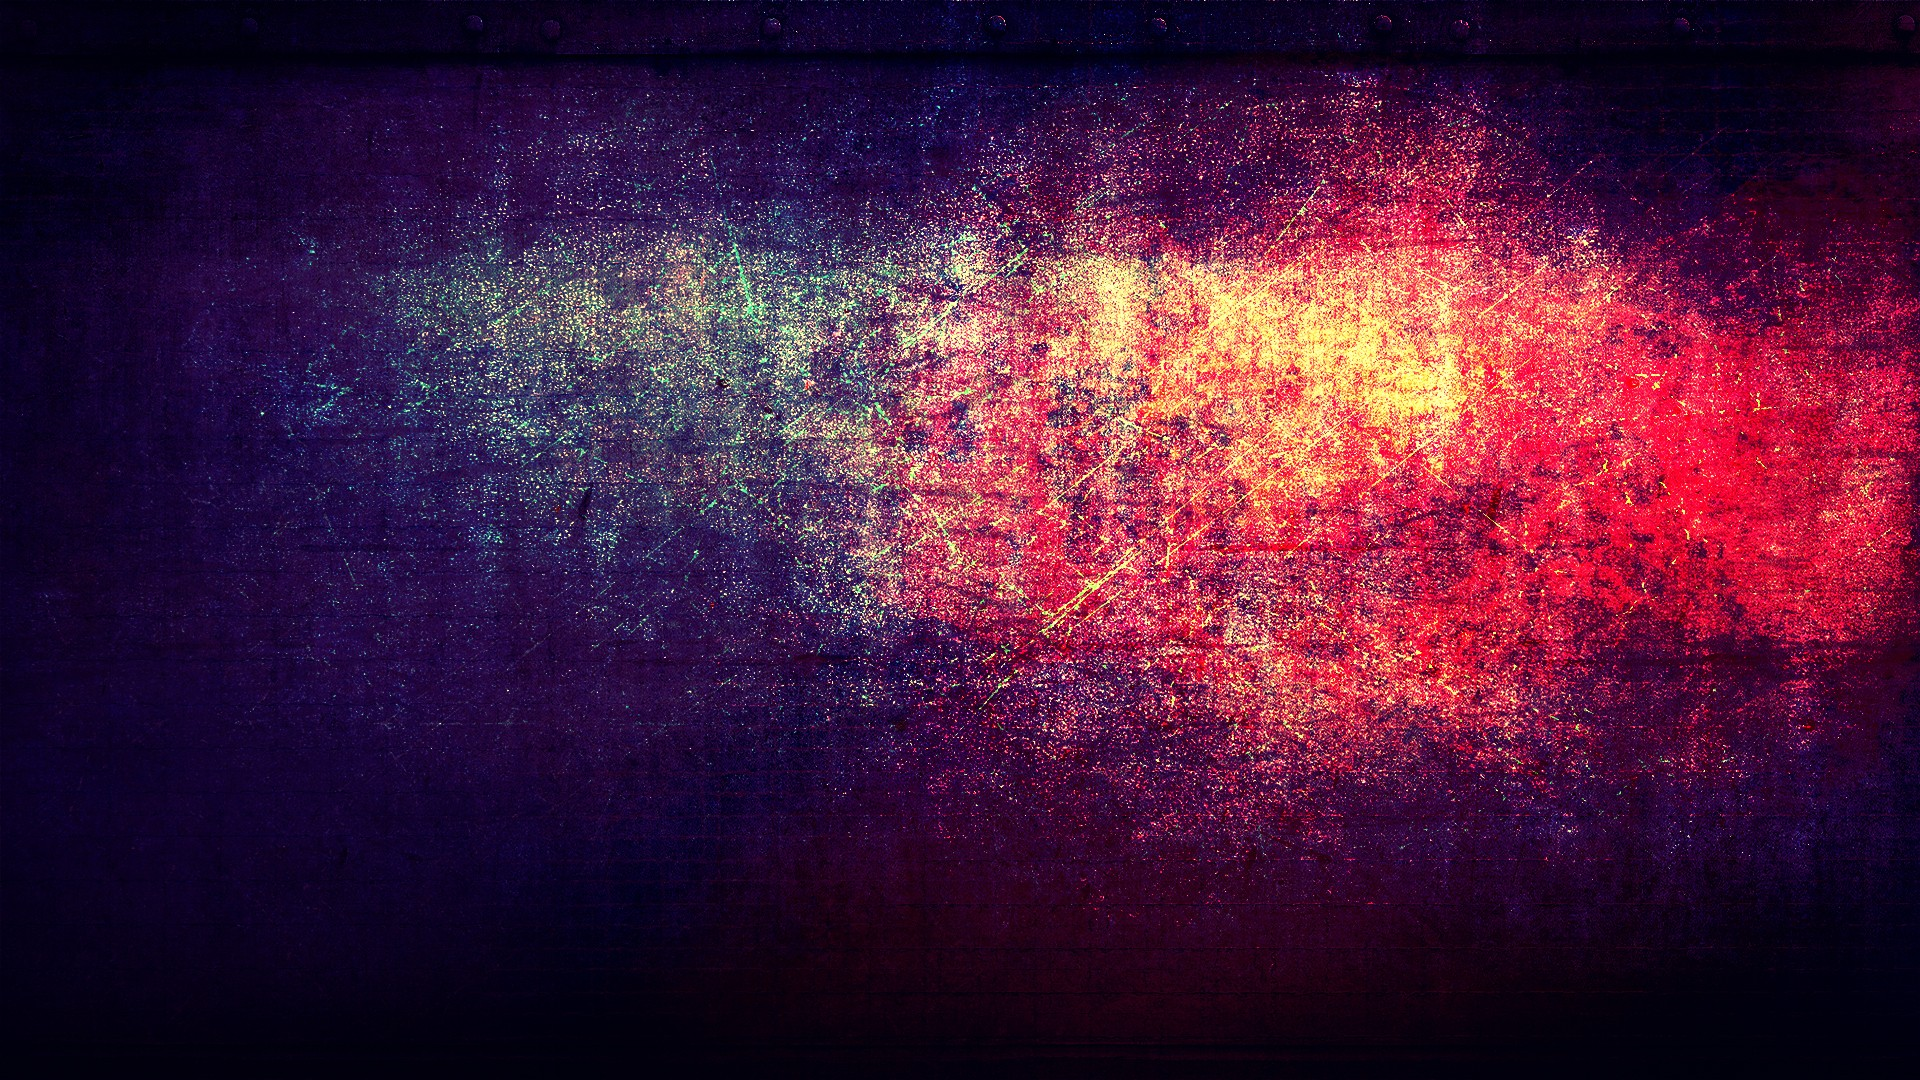 1920x1080 Grunge Red and Blue desktop PC and Mac wallpaper 1920x1080